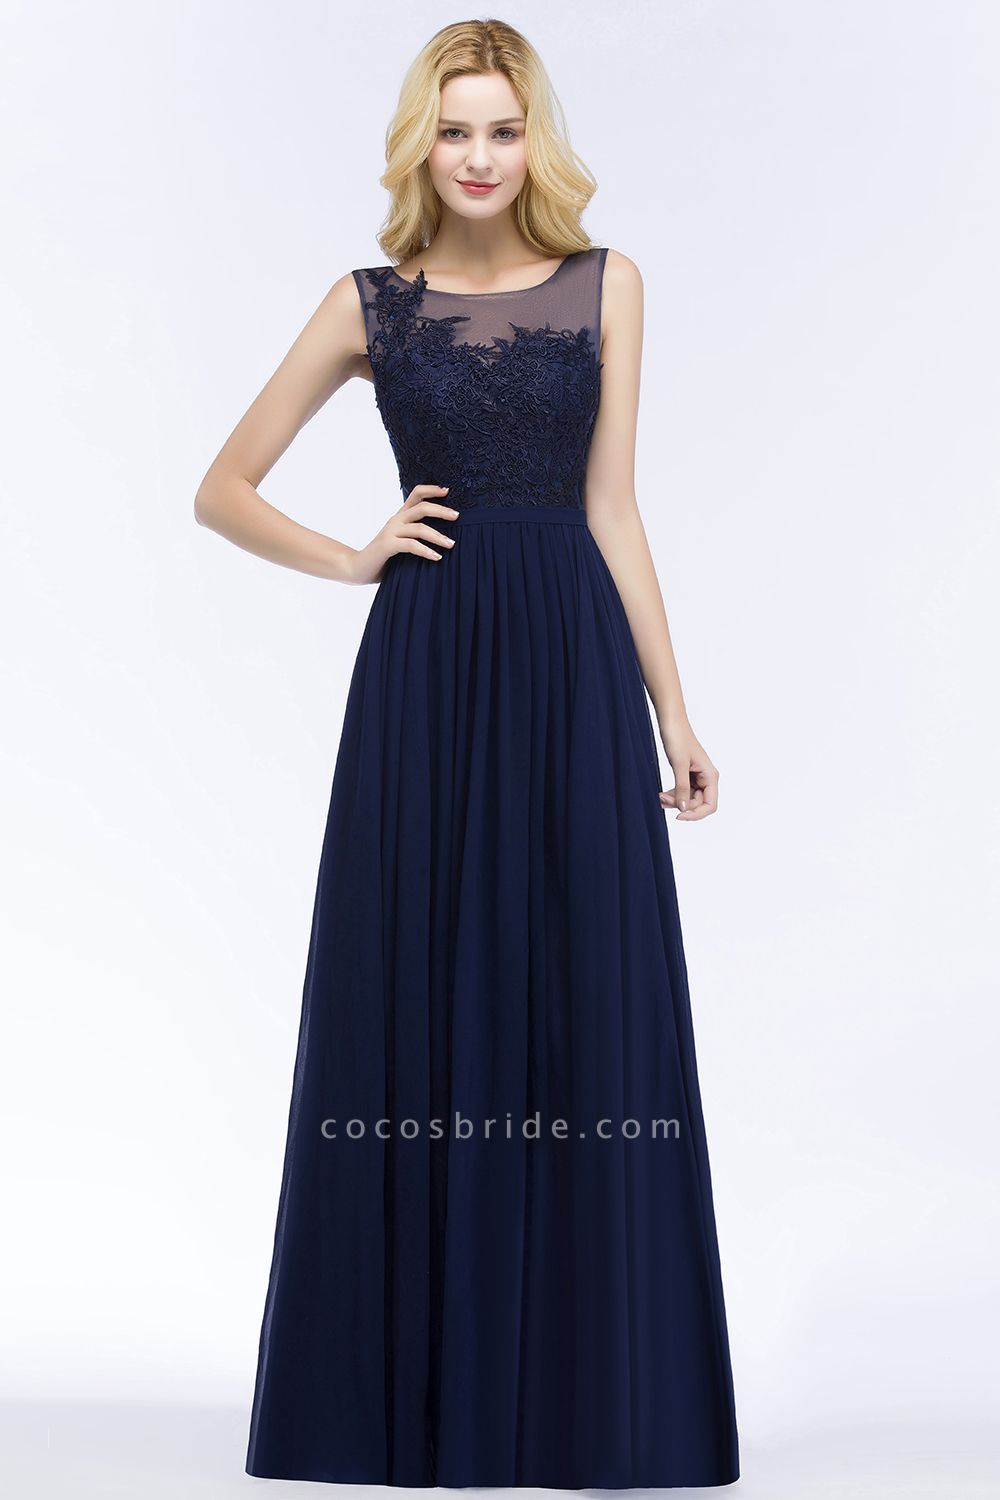 A-line Chiffon Appliques Scoop Sleeveless Floor-Length Bridesmaid Dresses